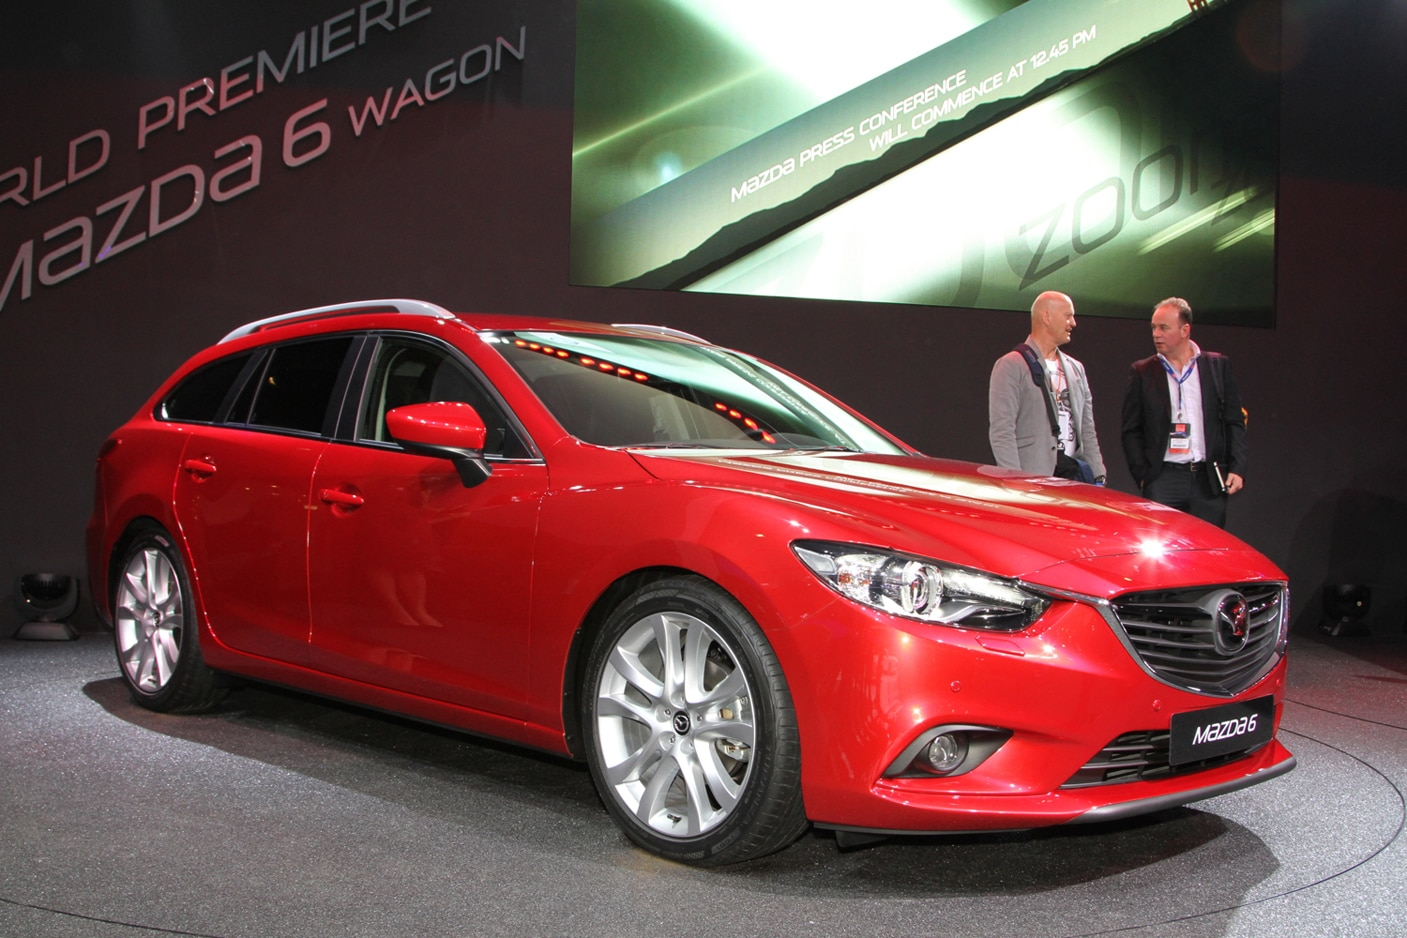 paris 2012 2014 mazda 6 is ready to fight accord camry fusion. Black Bedroom Furniture Sets. Home Design Ideas